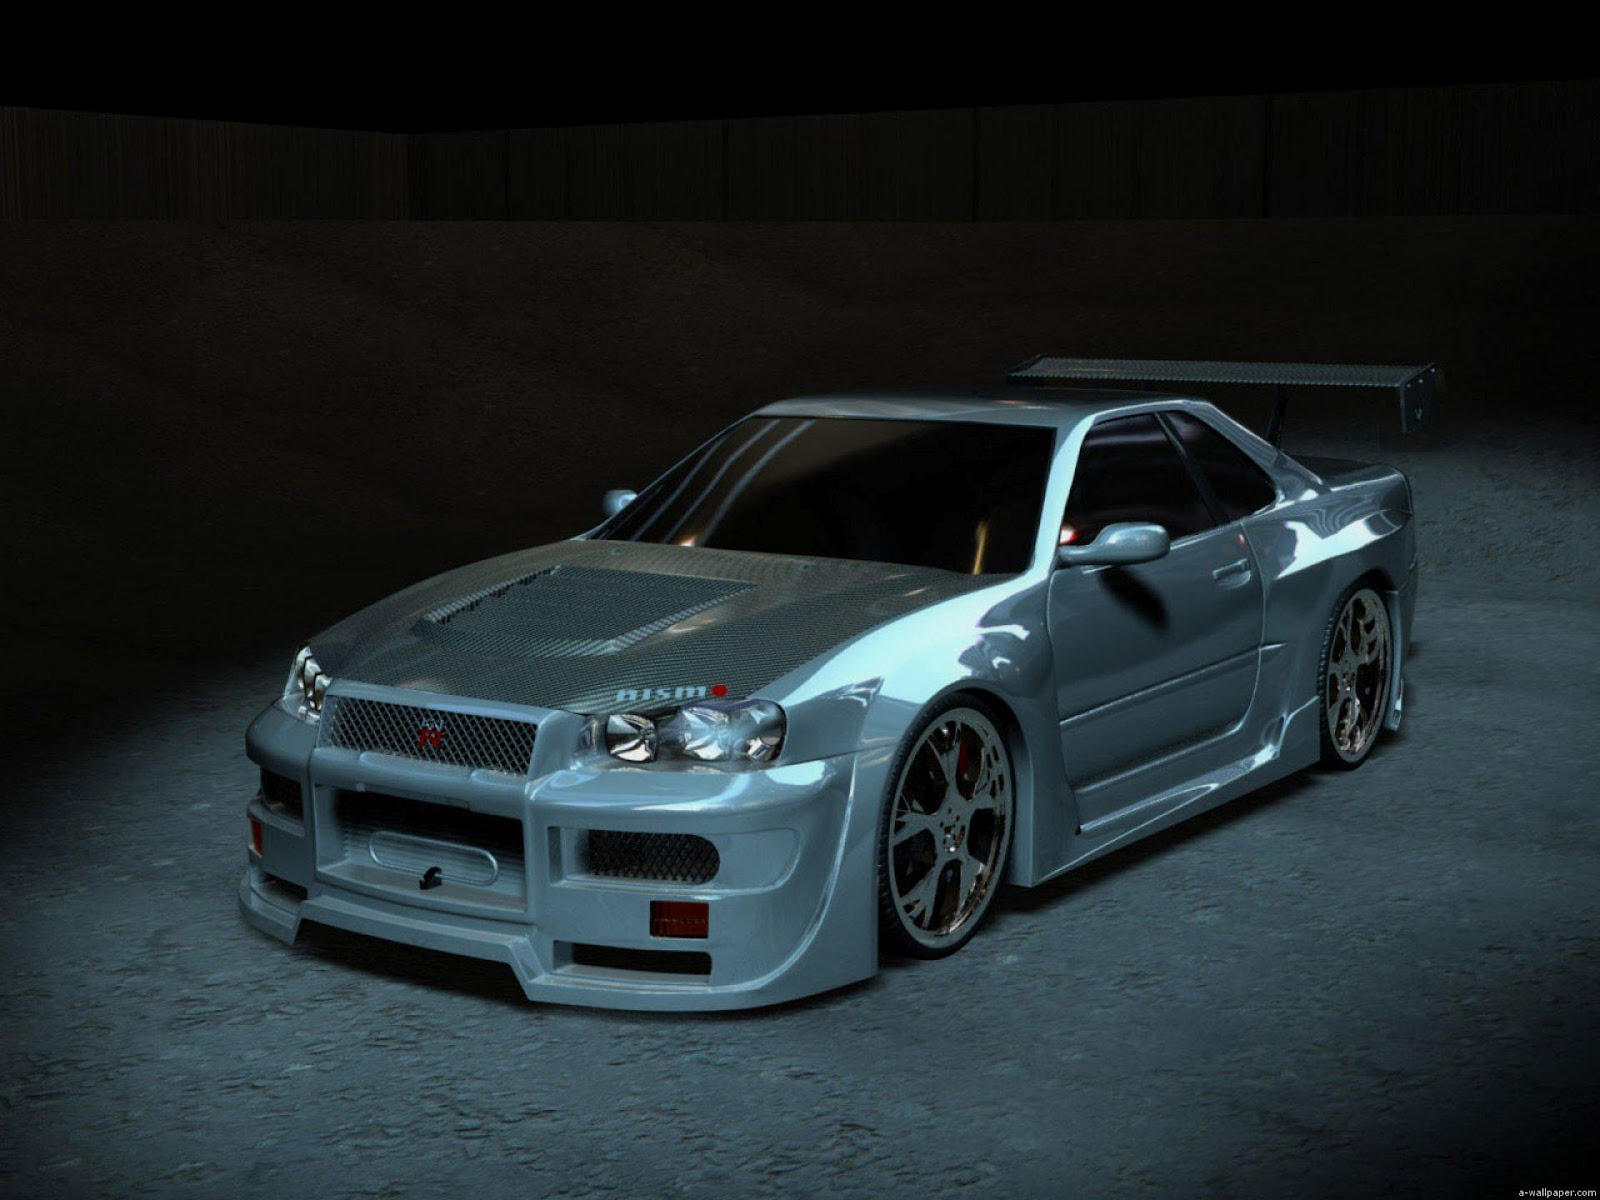 Cars Wallpapers: Free HD 3D Car's Wallpapers Collection